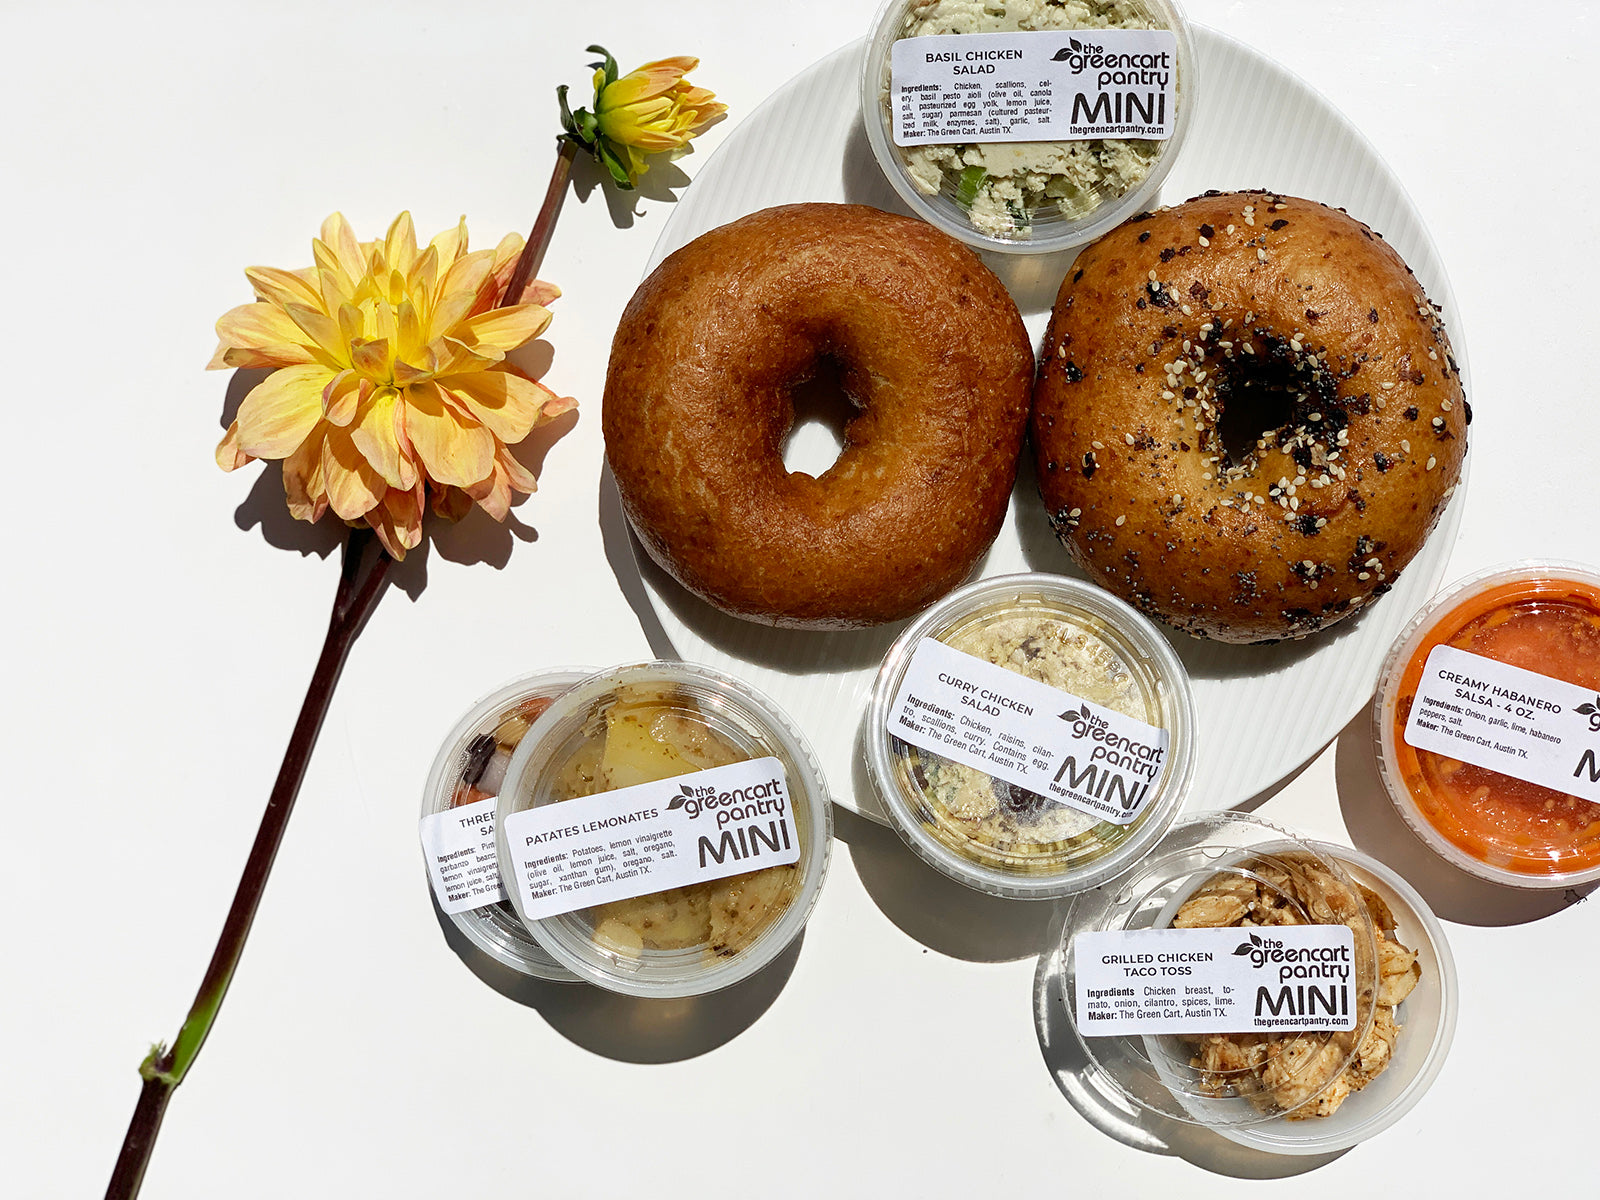 Gluten-free bagel special combo  - two bagels and MINI deli sides